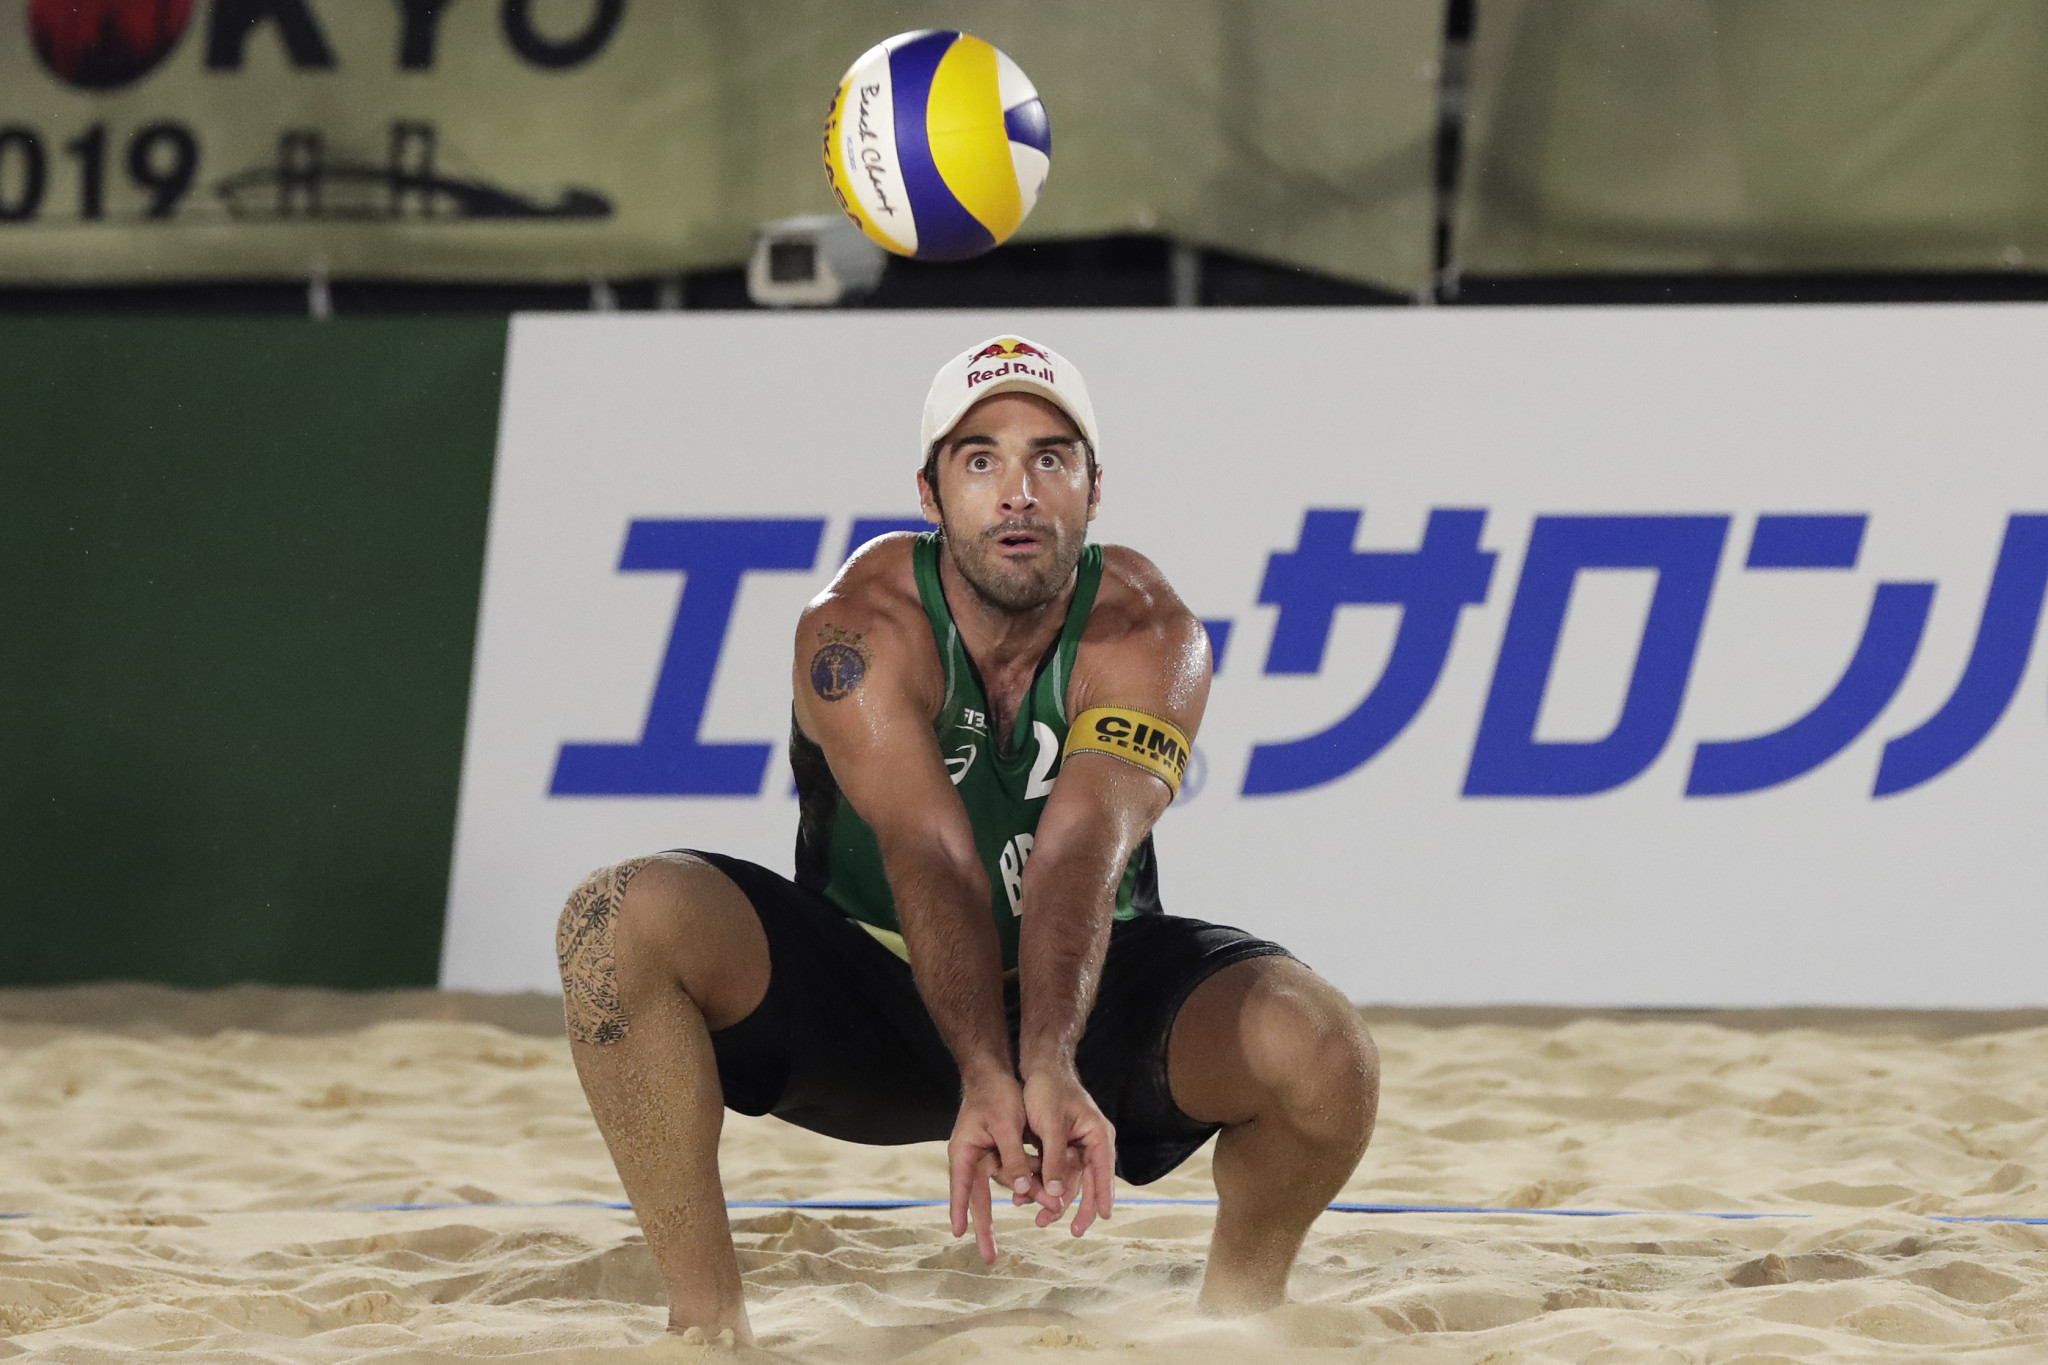 Olympic Beach Volleyball Champion Schmidt Leaves Hospital After Covid 19 Battle